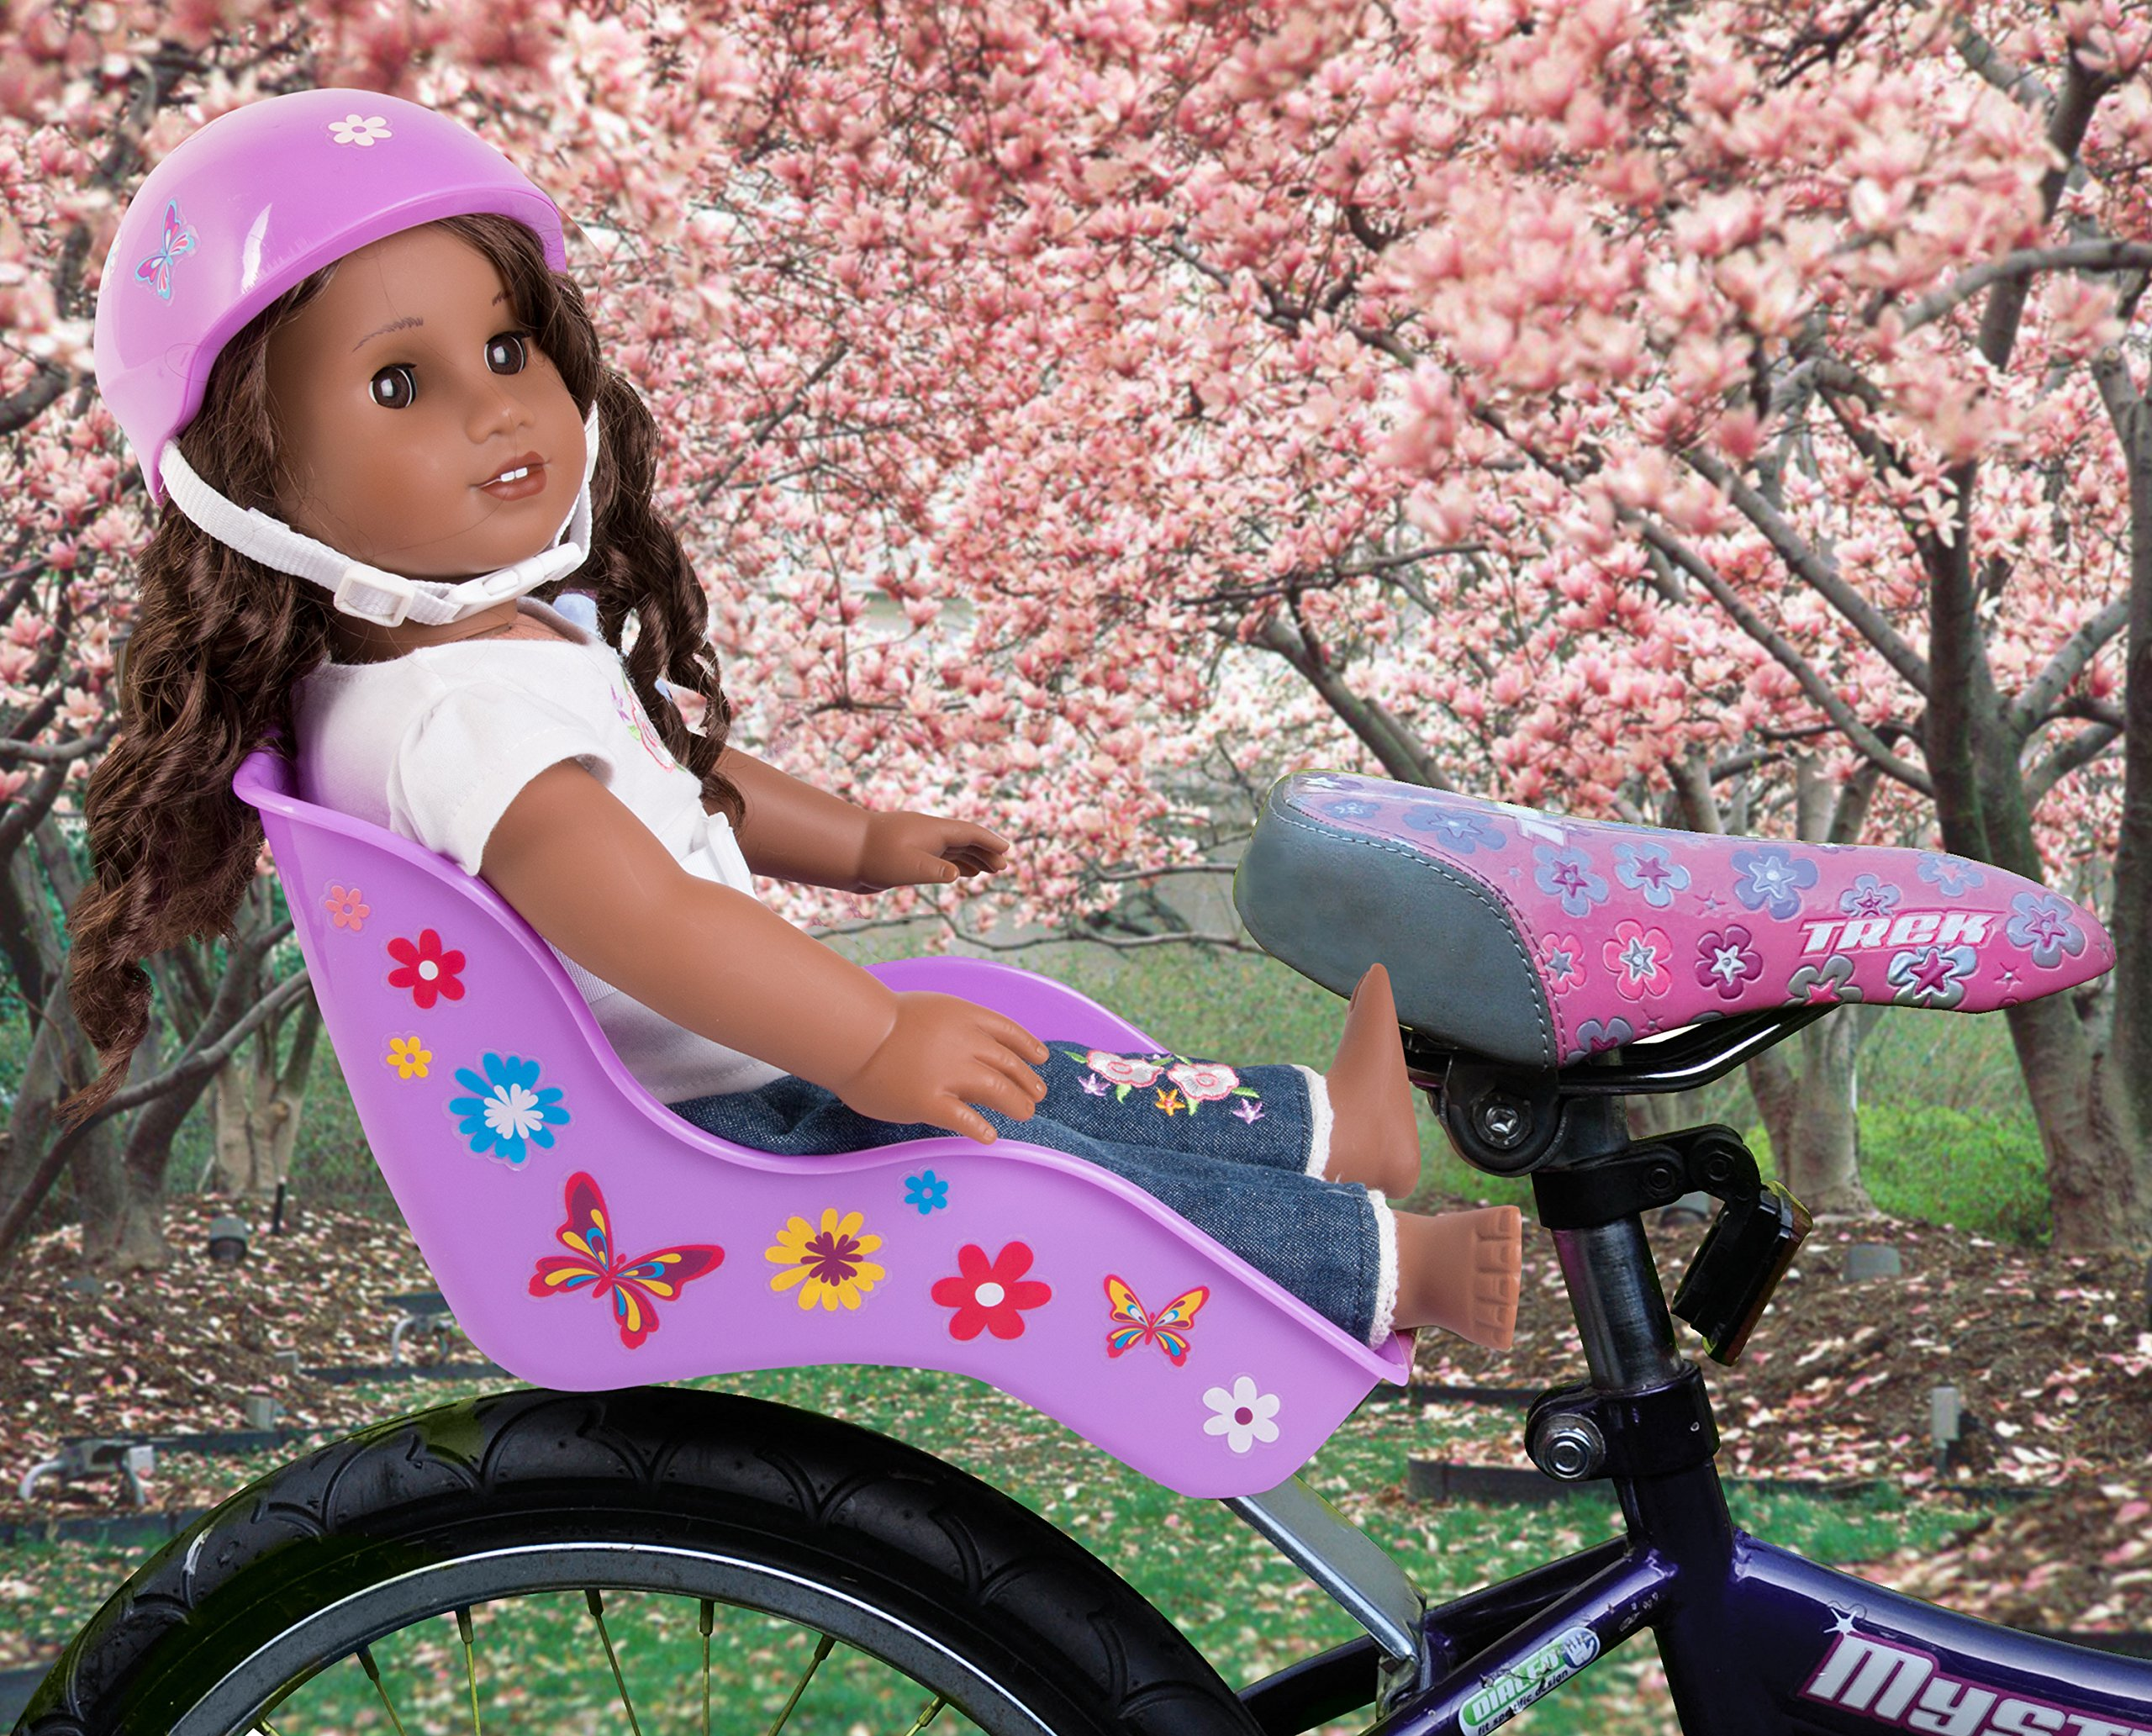 Ride Along Dolly Doll Bicycle Seat Bike Seat (Purple) with Decorate Yourself Decals (Fits American Girl and Stuffed Animals) by Ride Along Dolly (Image #2)